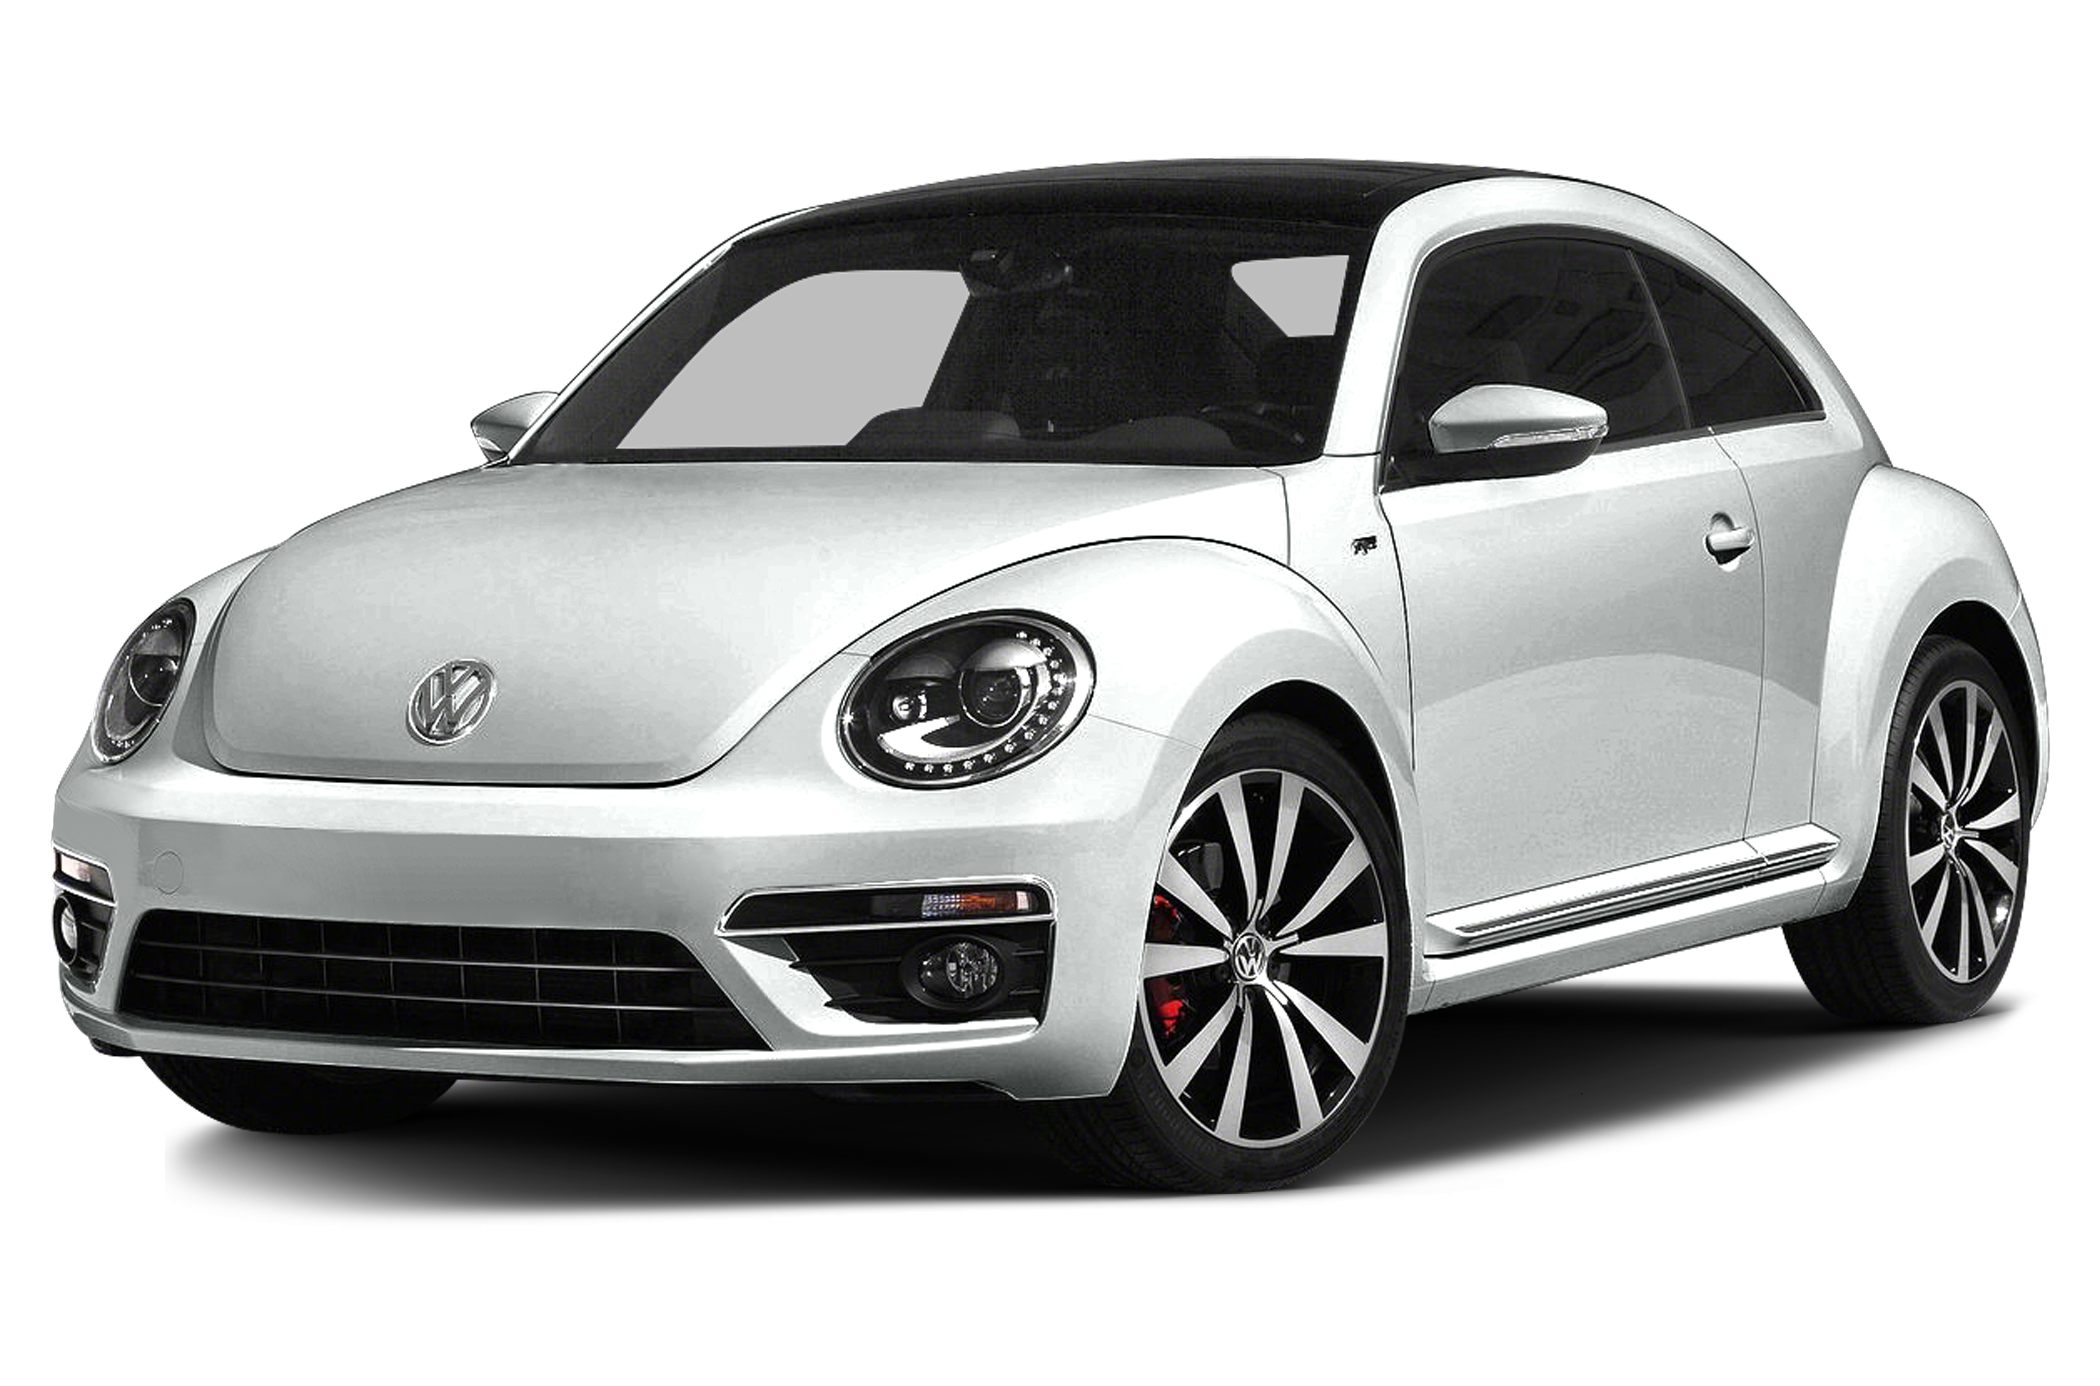 2015 Volkswagen Beetle 2.0T R-Line Convertible for sale in Fort Lauderdale for $30,415 with 5 miles